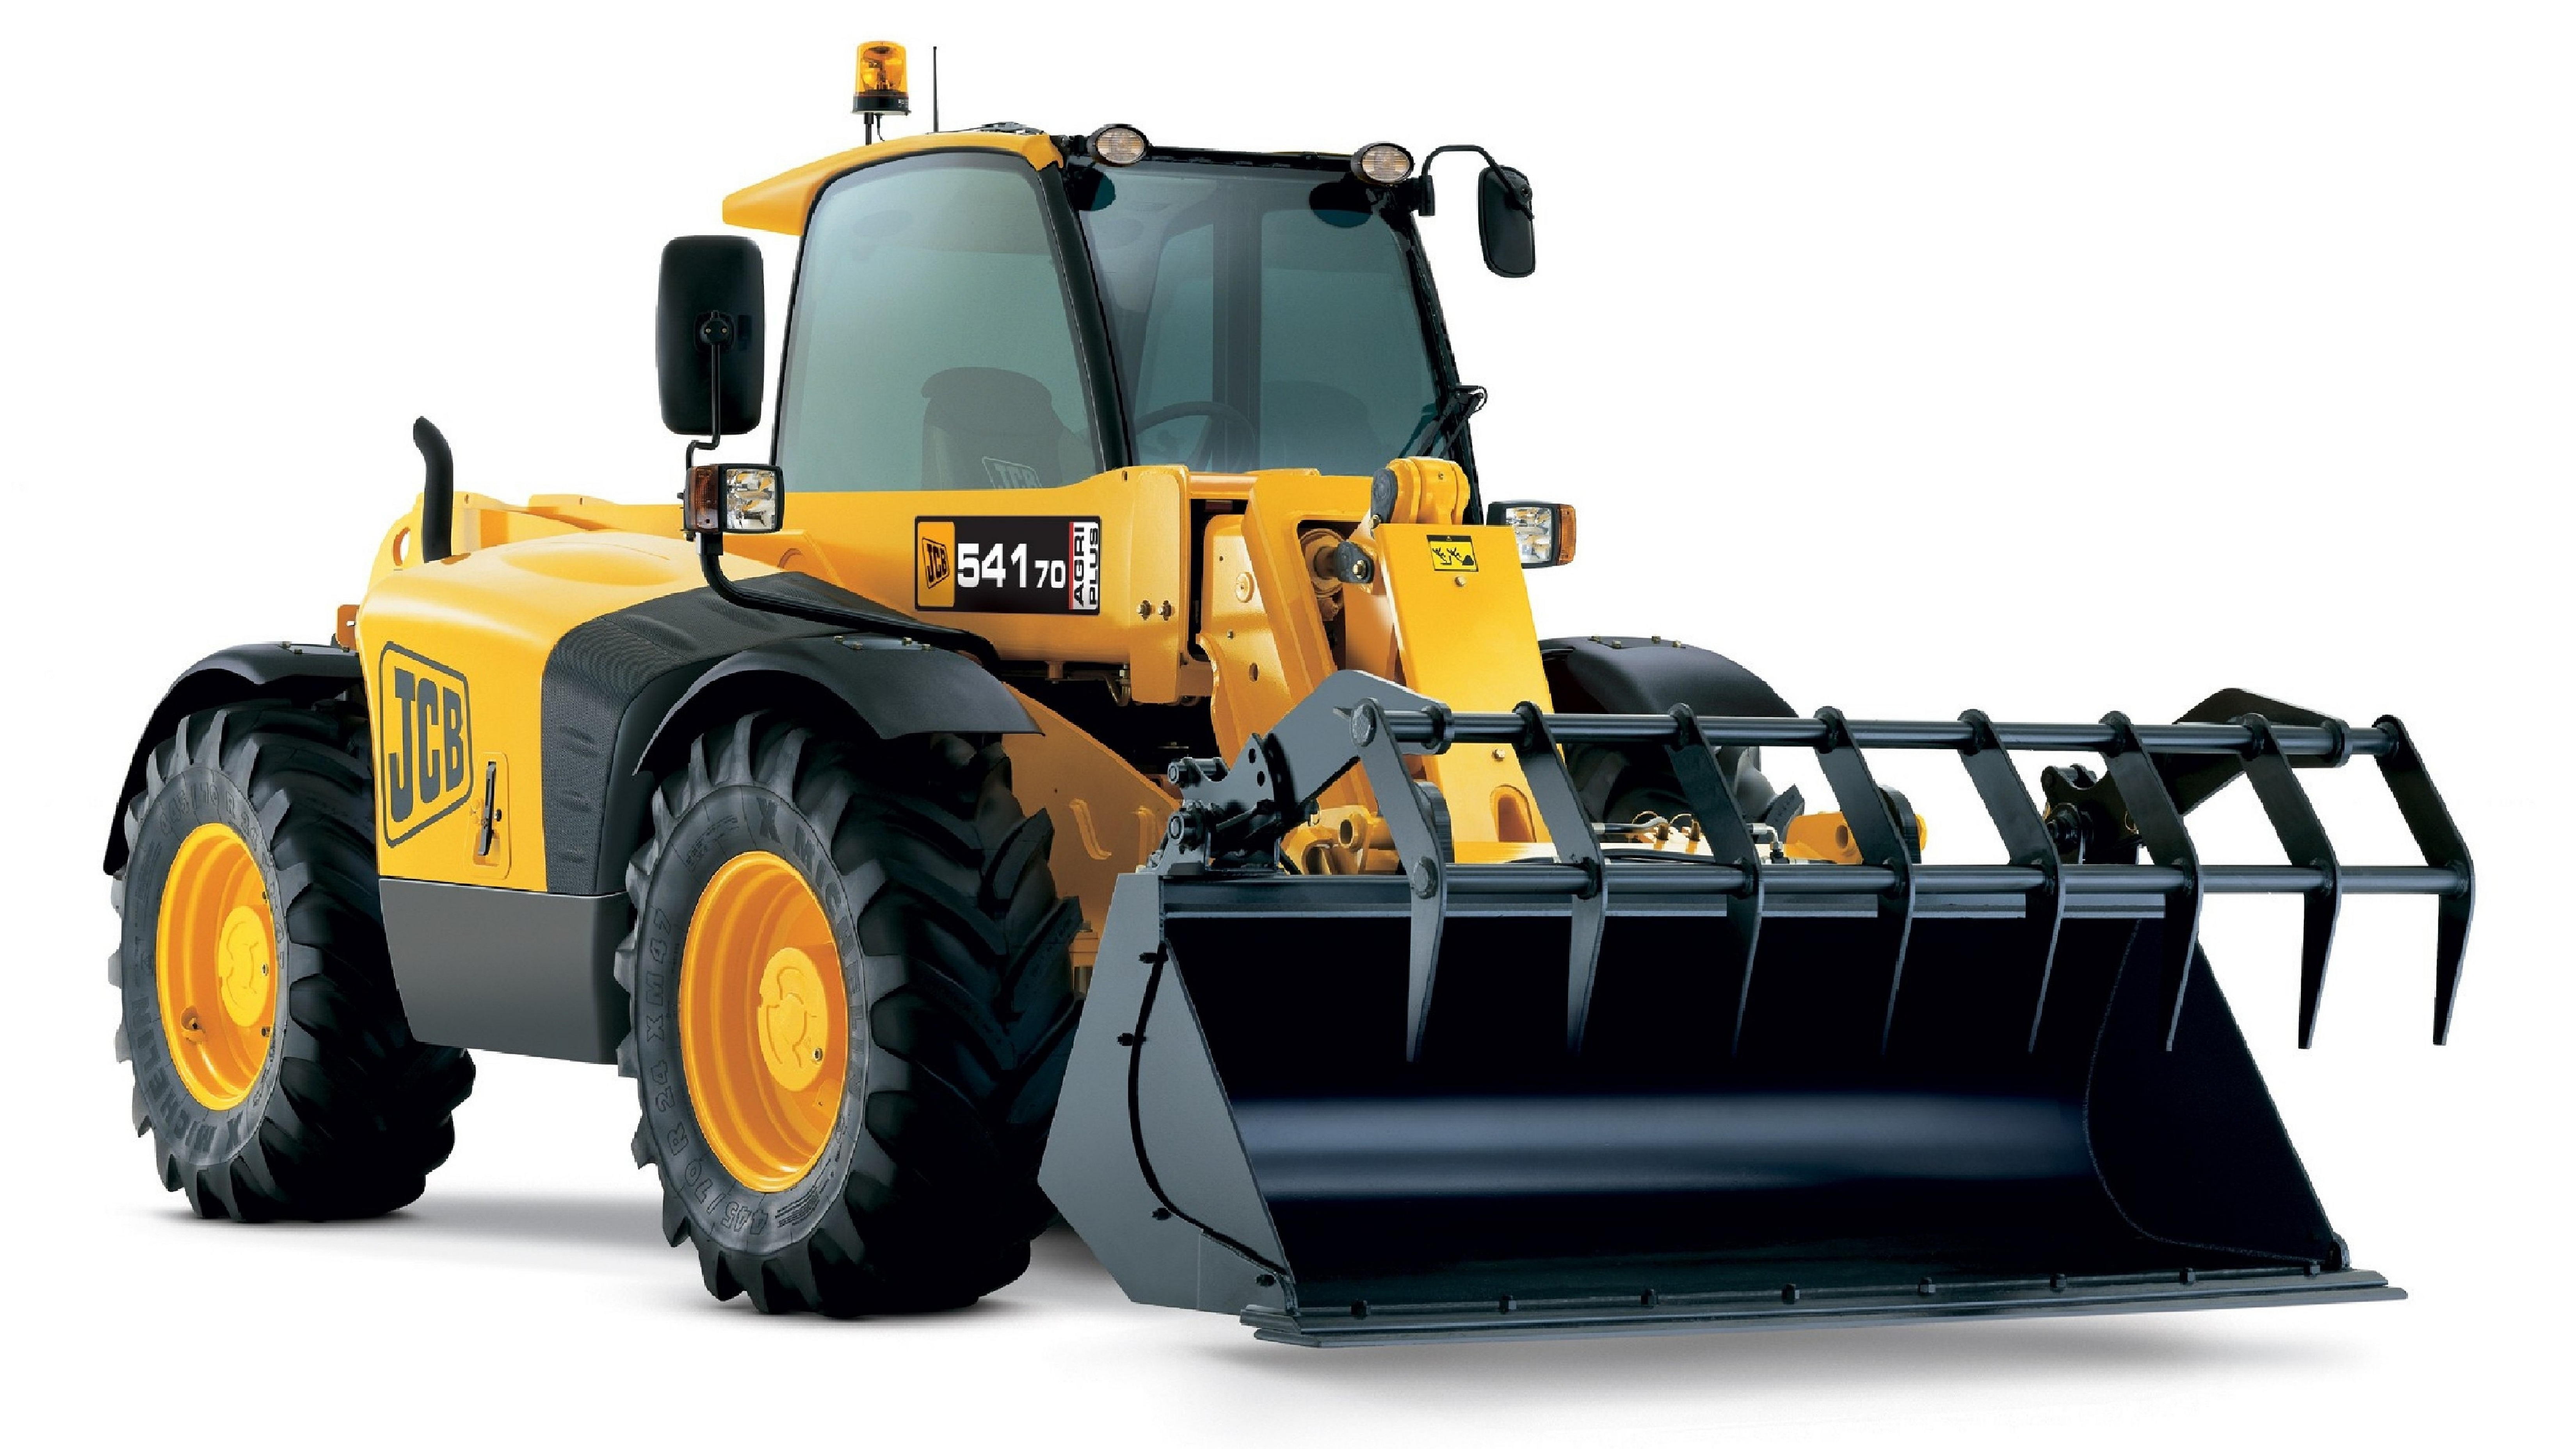 1 JCB Loadall HD Wallpapers Background Images 6600x3713